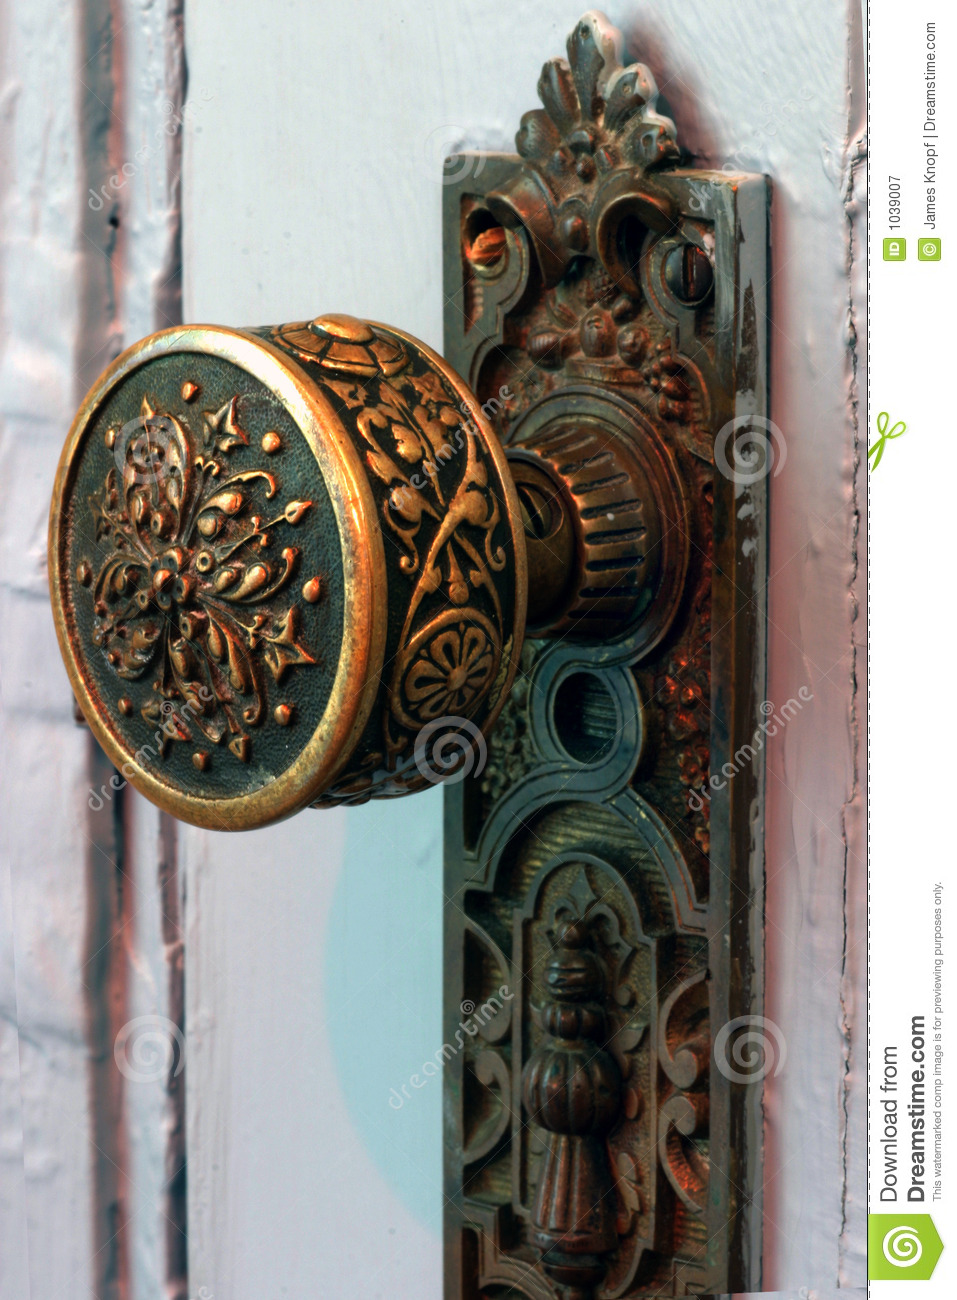 Antique Brass Door Knob Royalty Free Stock Photography